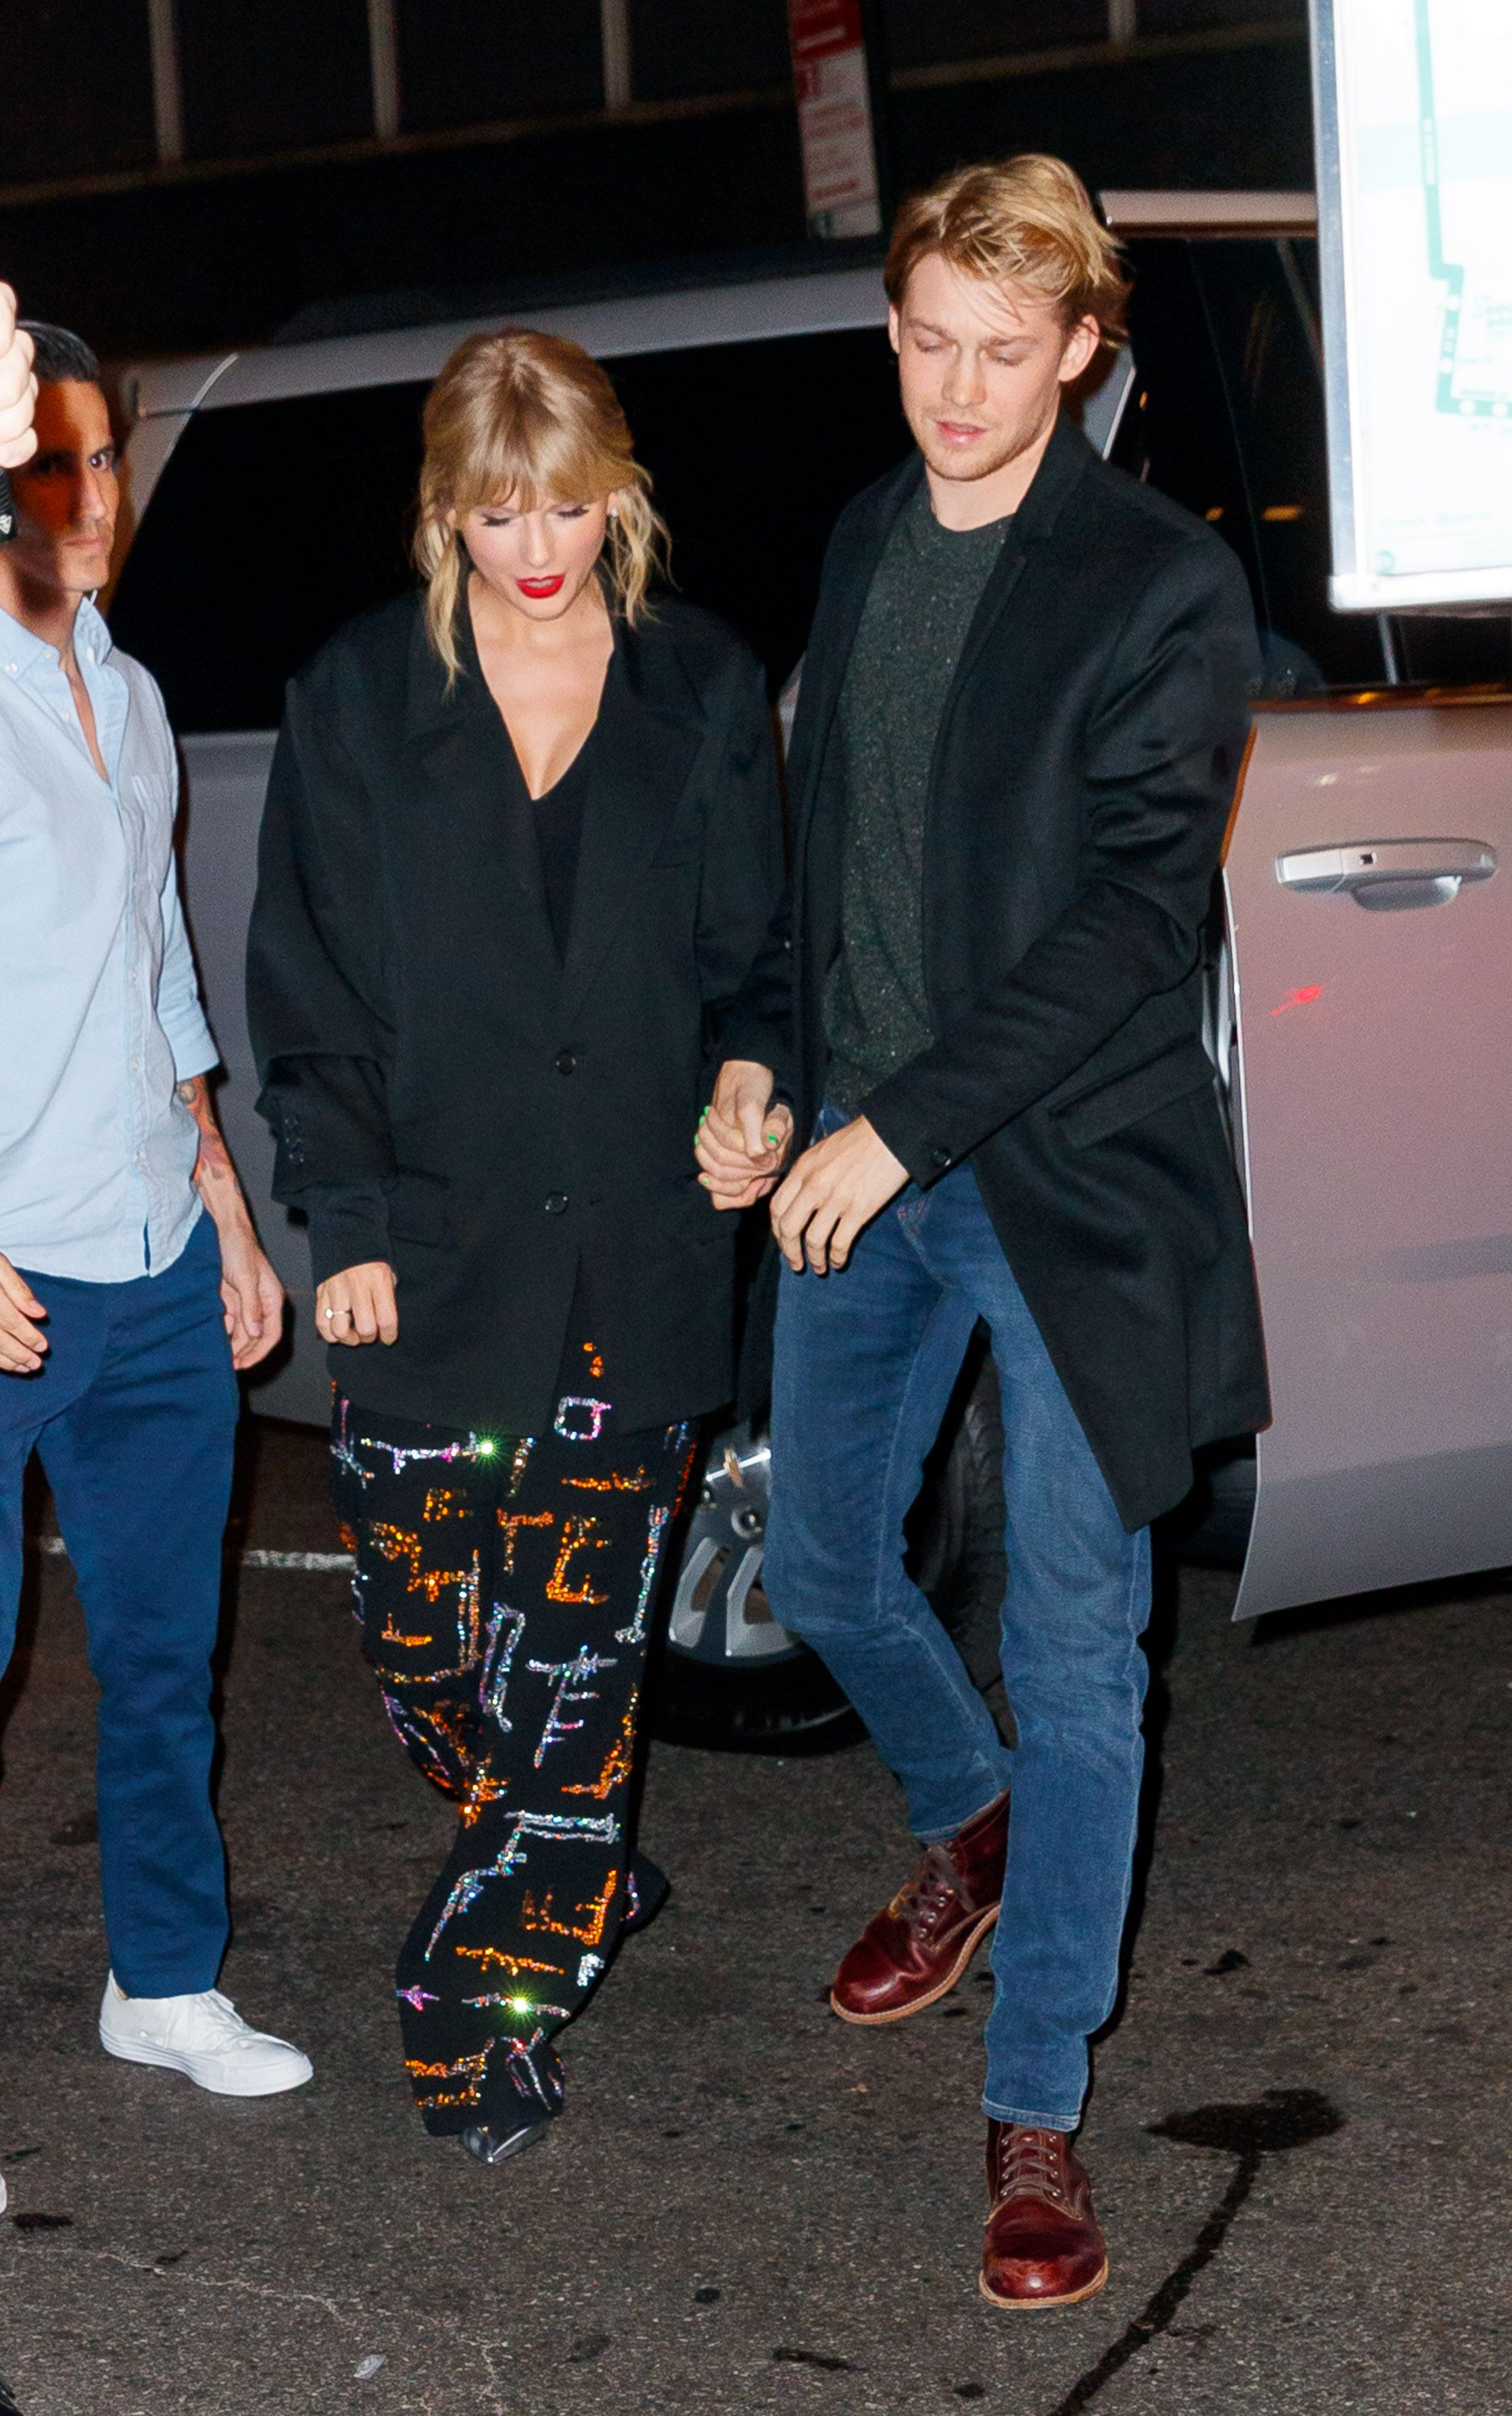 Taylor Swift dating consigli diciassette